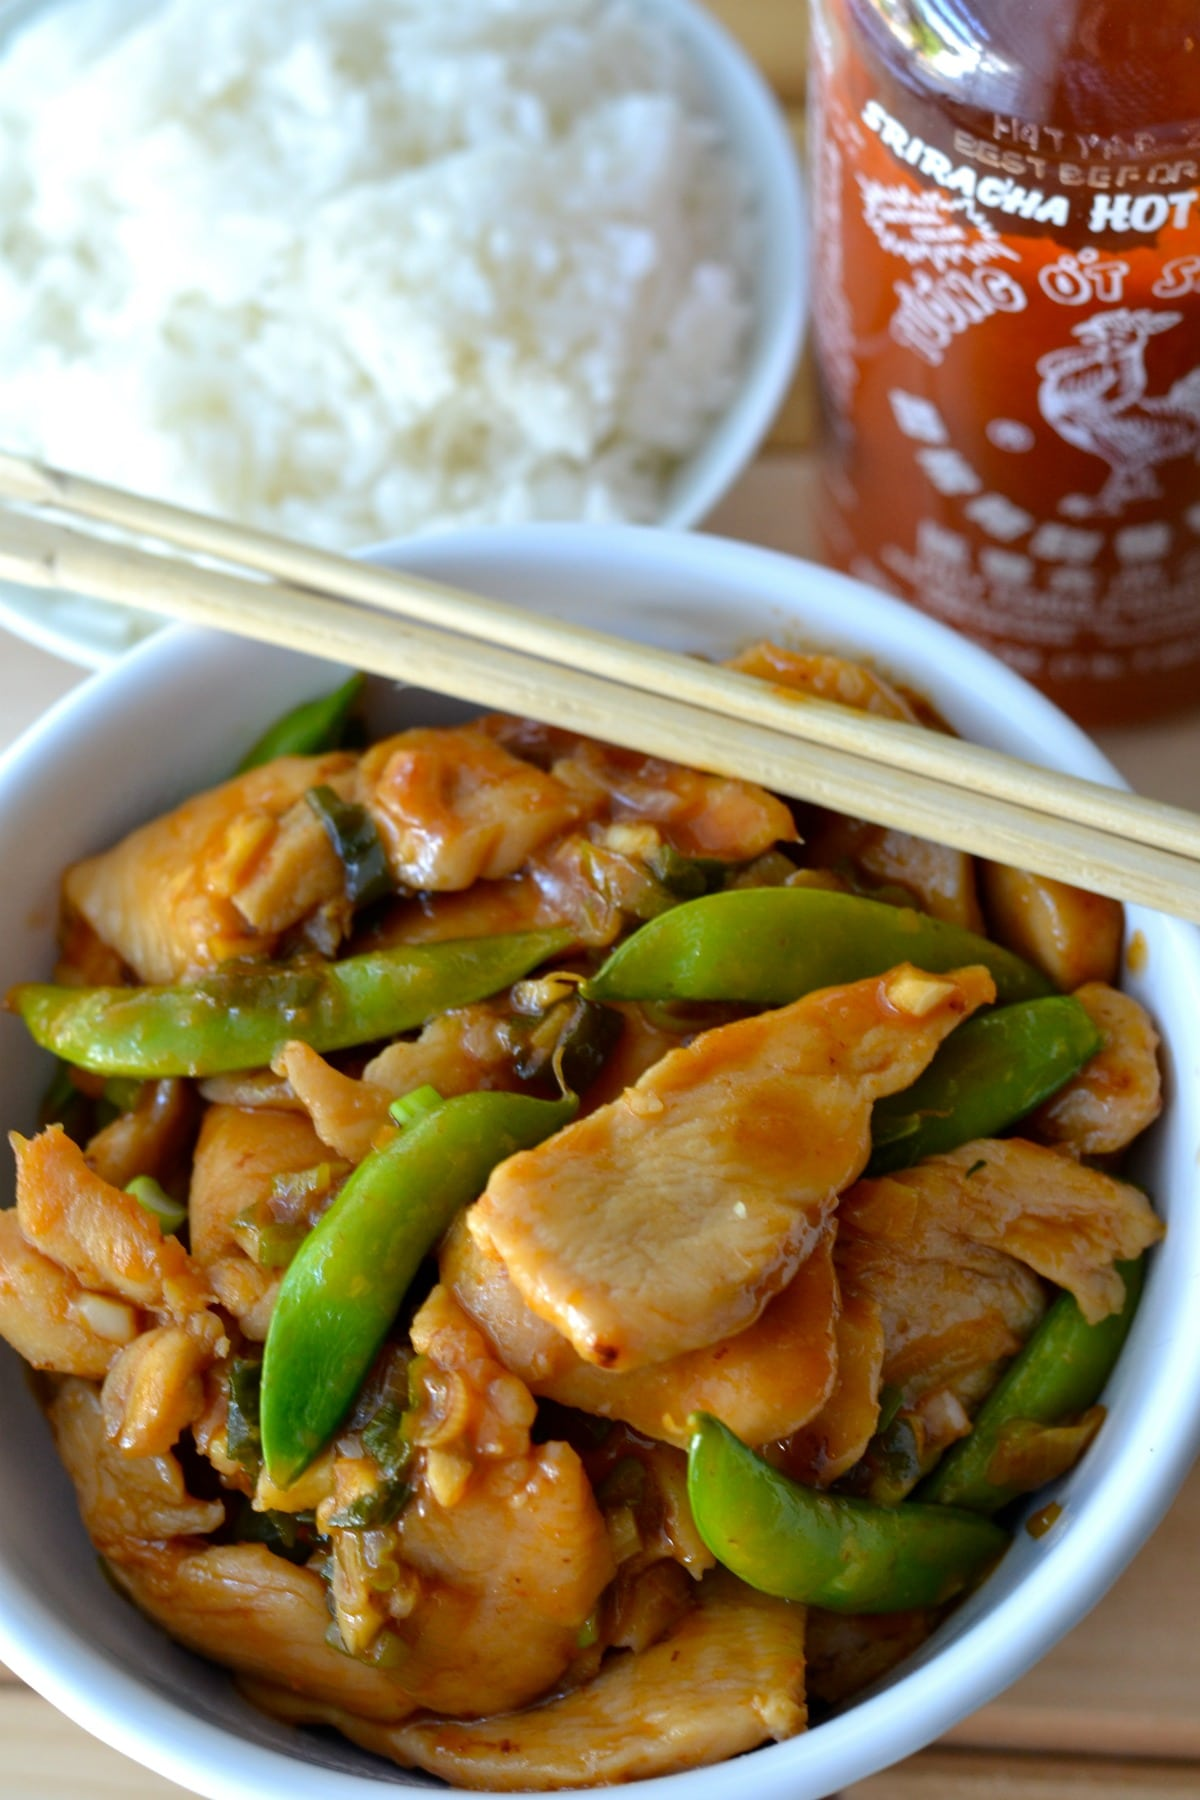 Spicy Asian Chicken Stir Fry